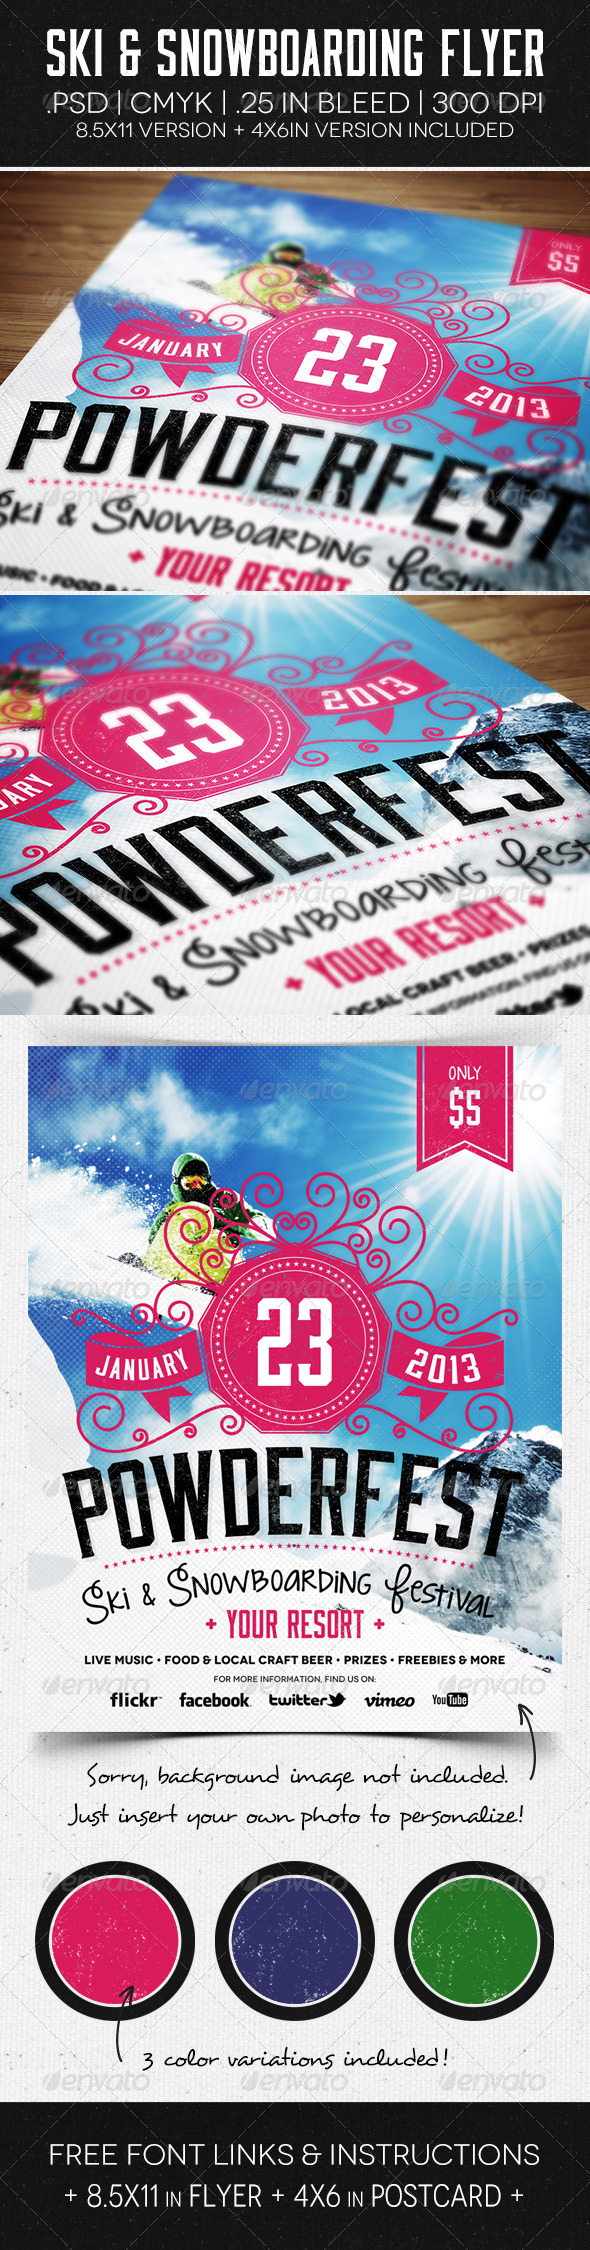 Ski & Snowboard Flyer & Postcard - Events Flyers